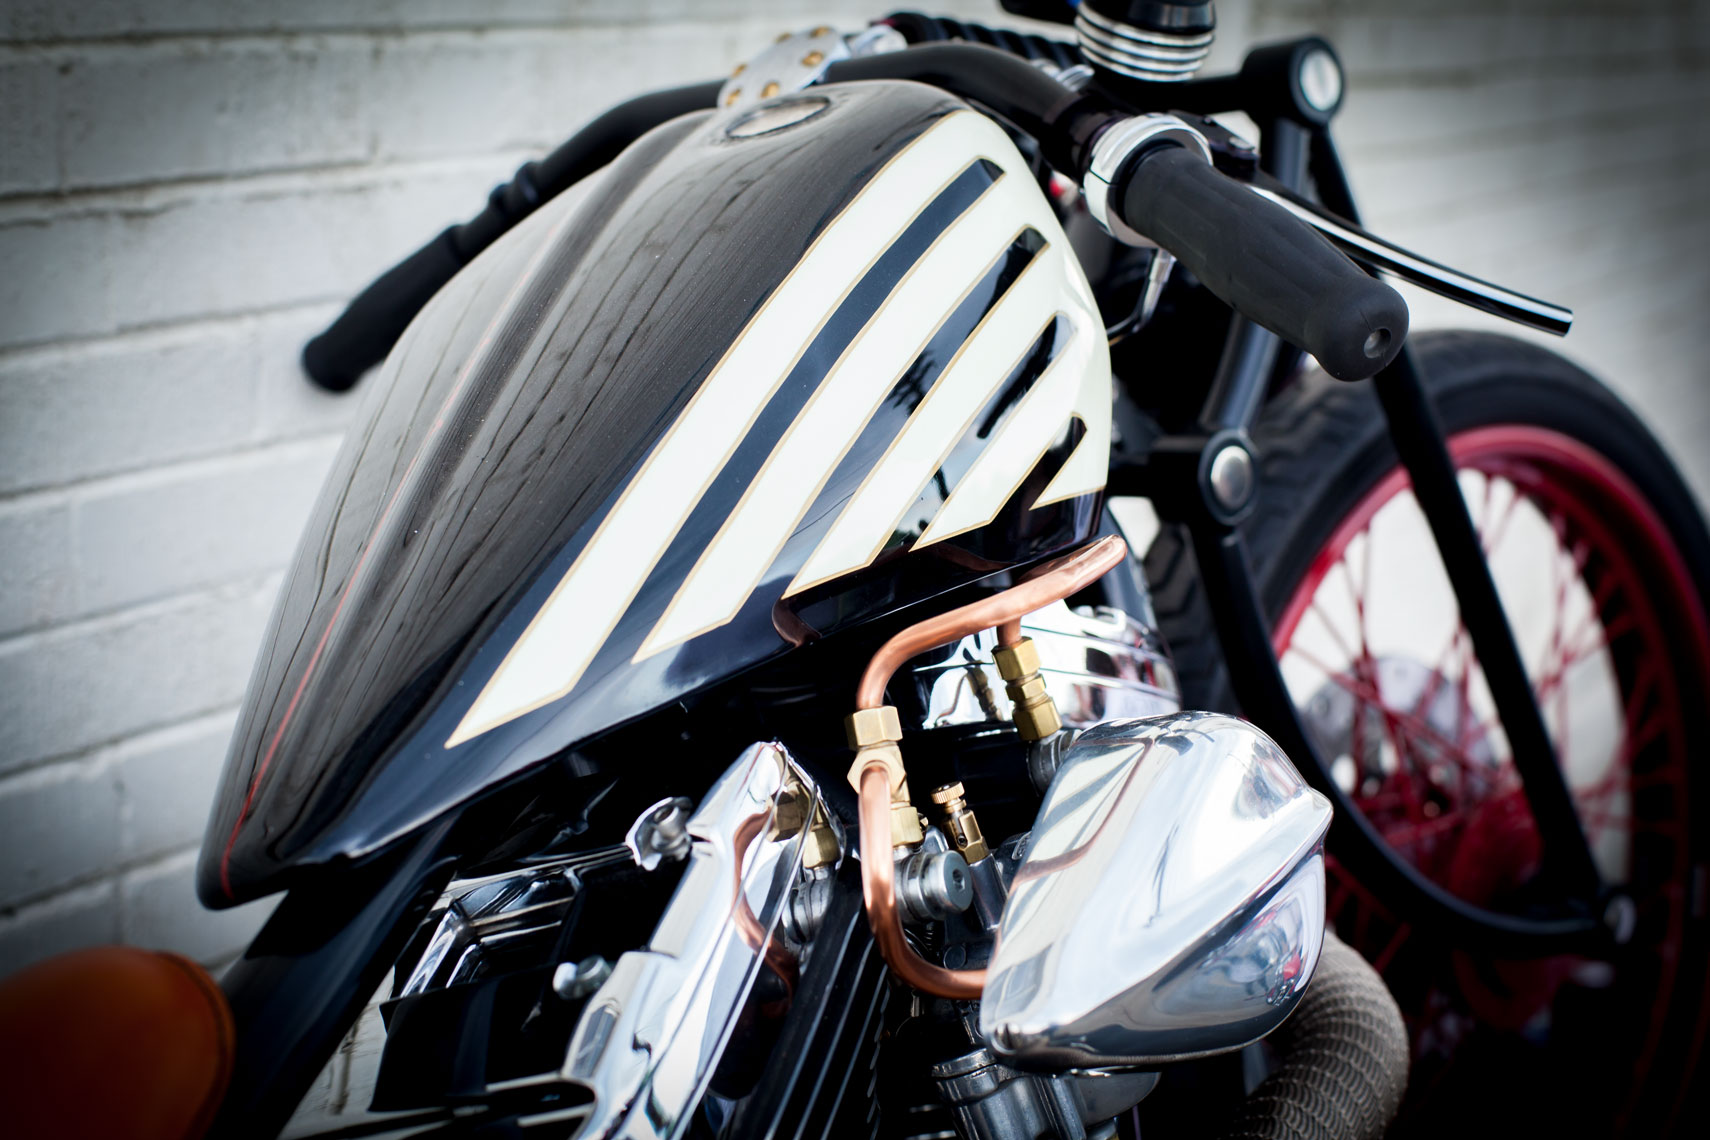 15 Location Photography Custom Motorcycle Builderes Denver Colorado FTW Dice Stripes